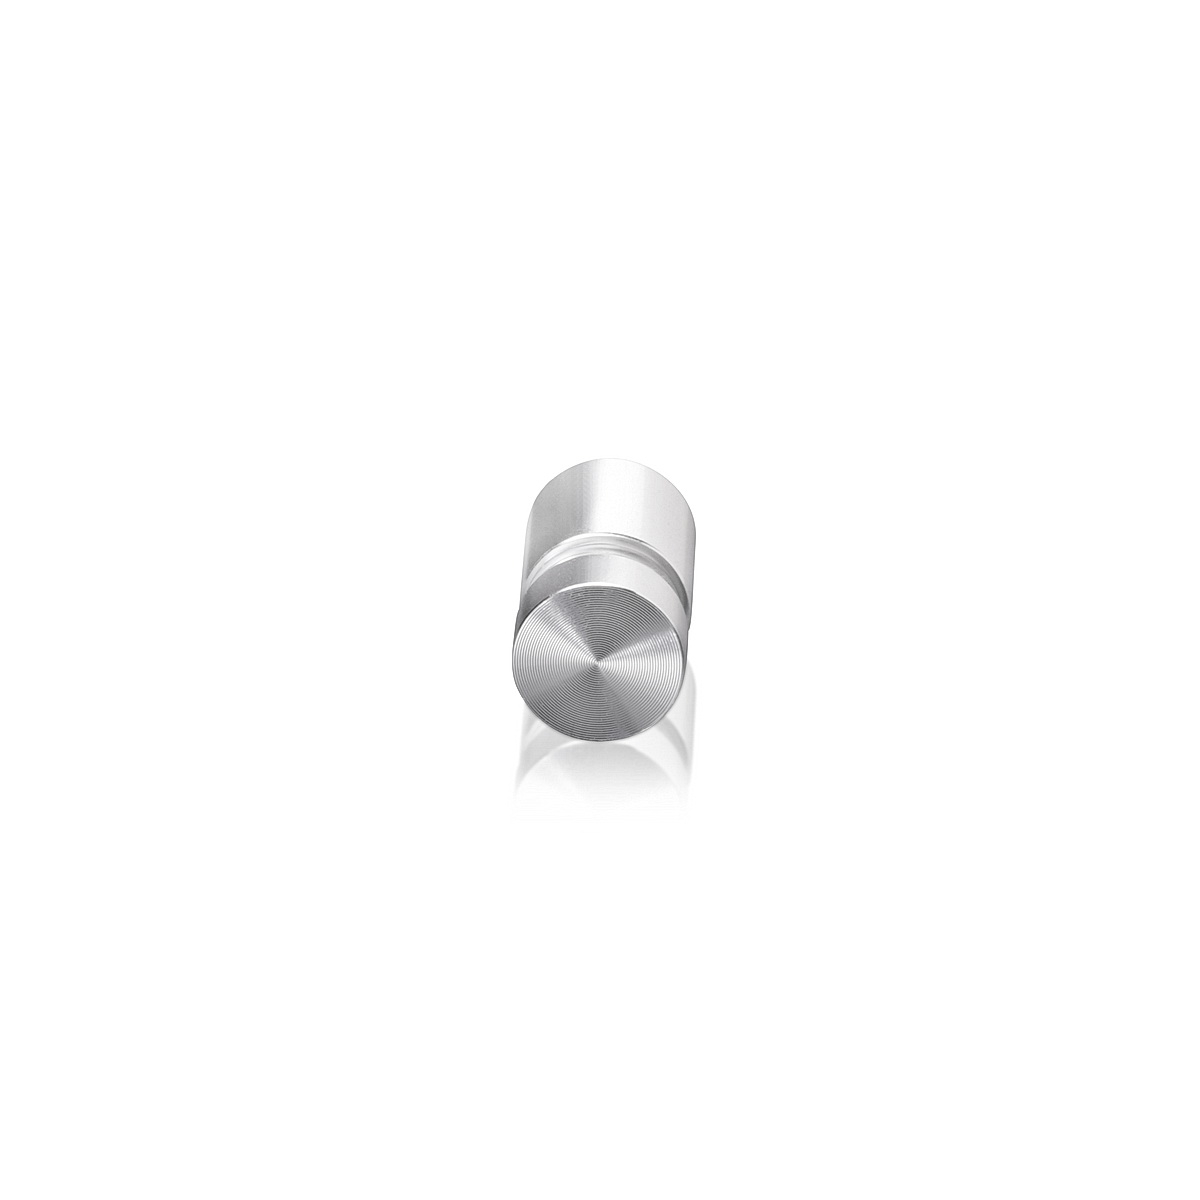 1/2'' Diameter X 1/2'' Barrel Length, Aluminum Flat Head Standoffs, Shiny Anodized Finish Easy Fasten Standoff (For Inside / Outside use) Tamper Proof Standoff